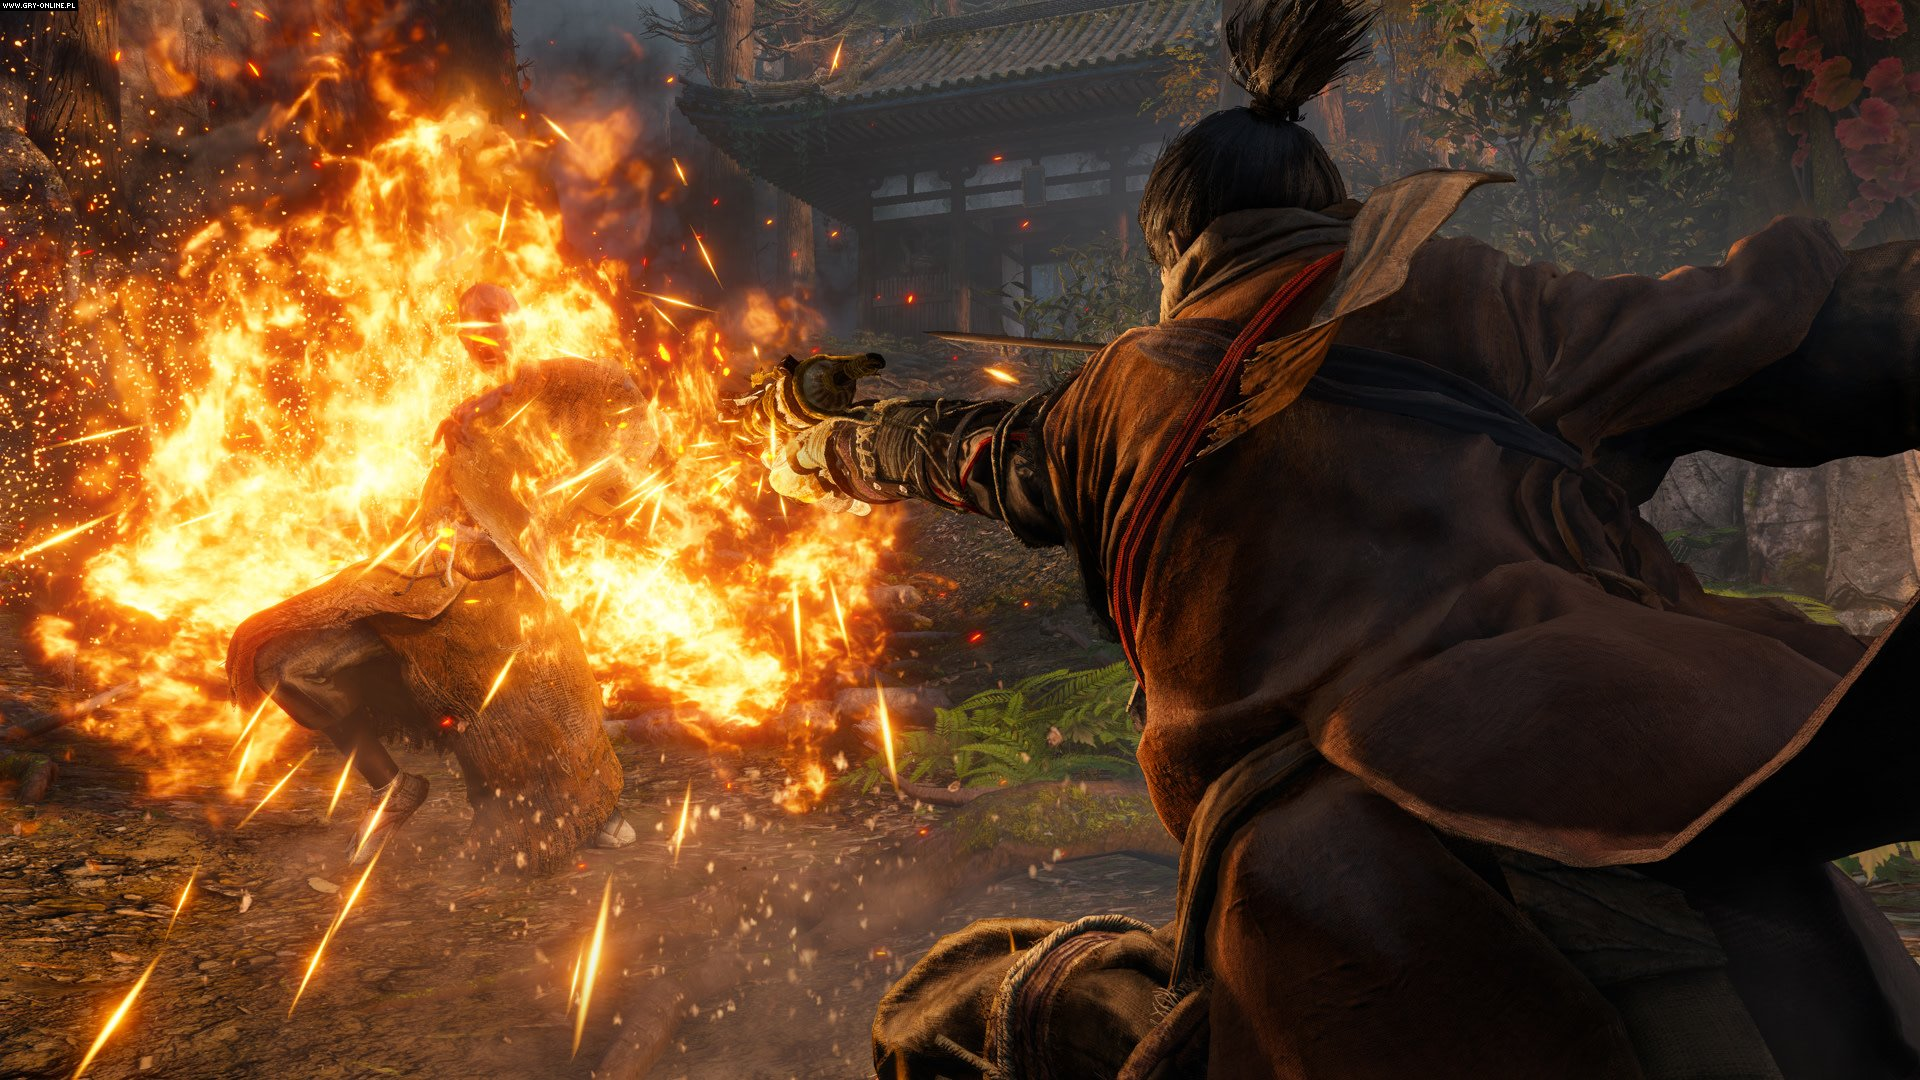 Sekiro: Shadows Die Twice PC, PS4, XONE Games Image 4/29, FromSoftware, Activision Blizzard